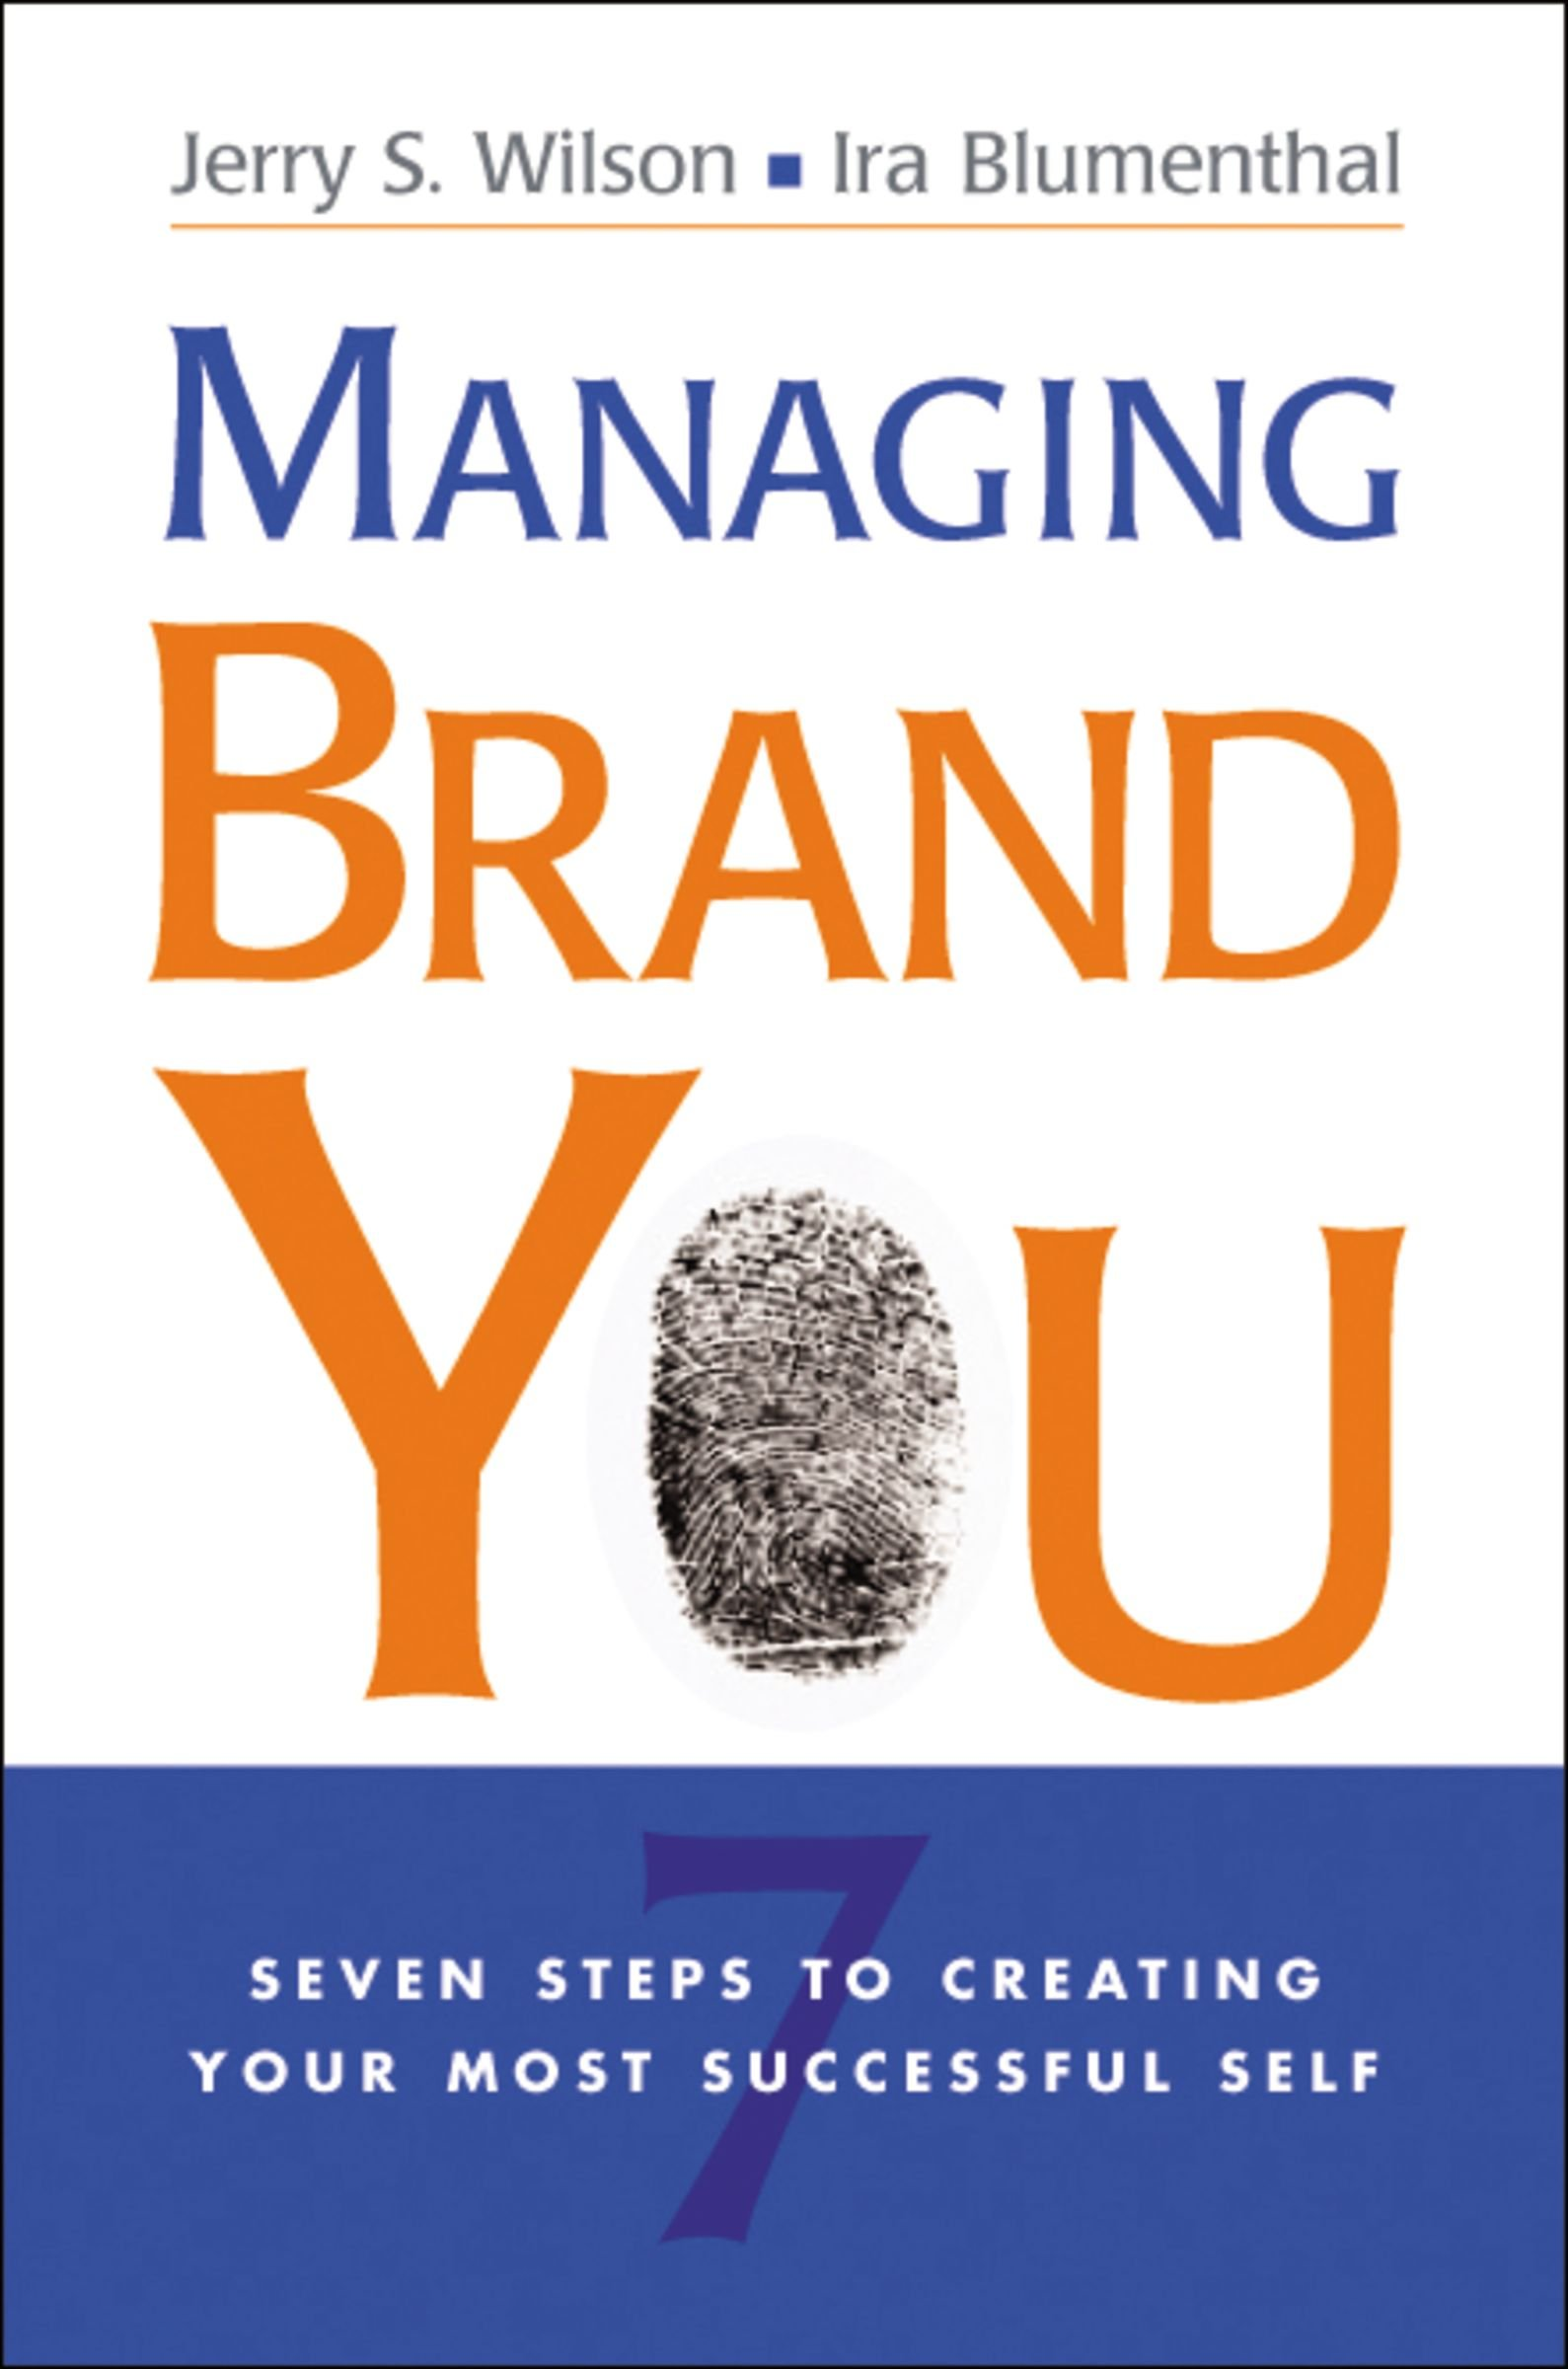 Download Managing Brand You: 7 Steps to Creating Your Most Successful Self ebook